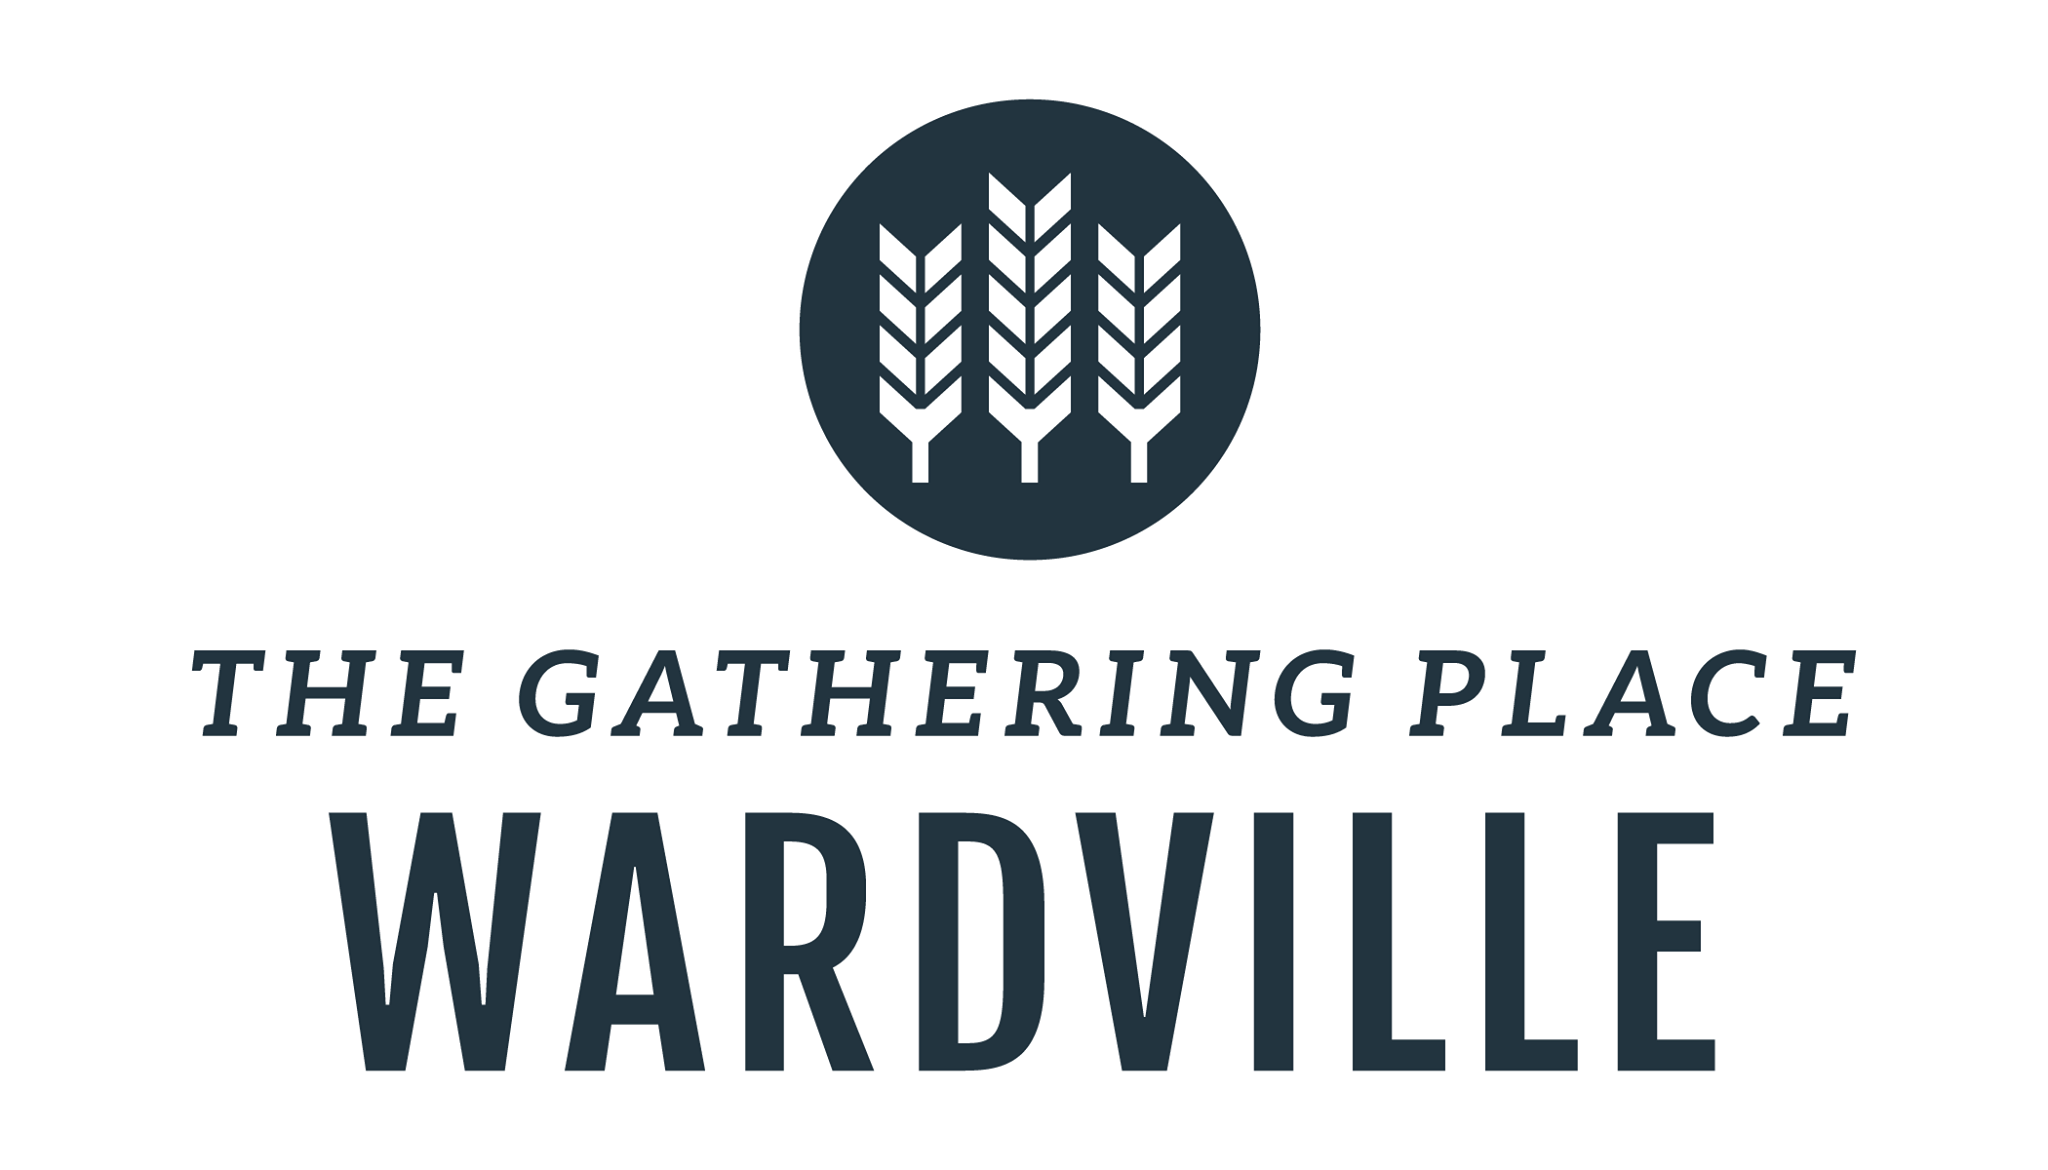 The Gathering Place Wardville